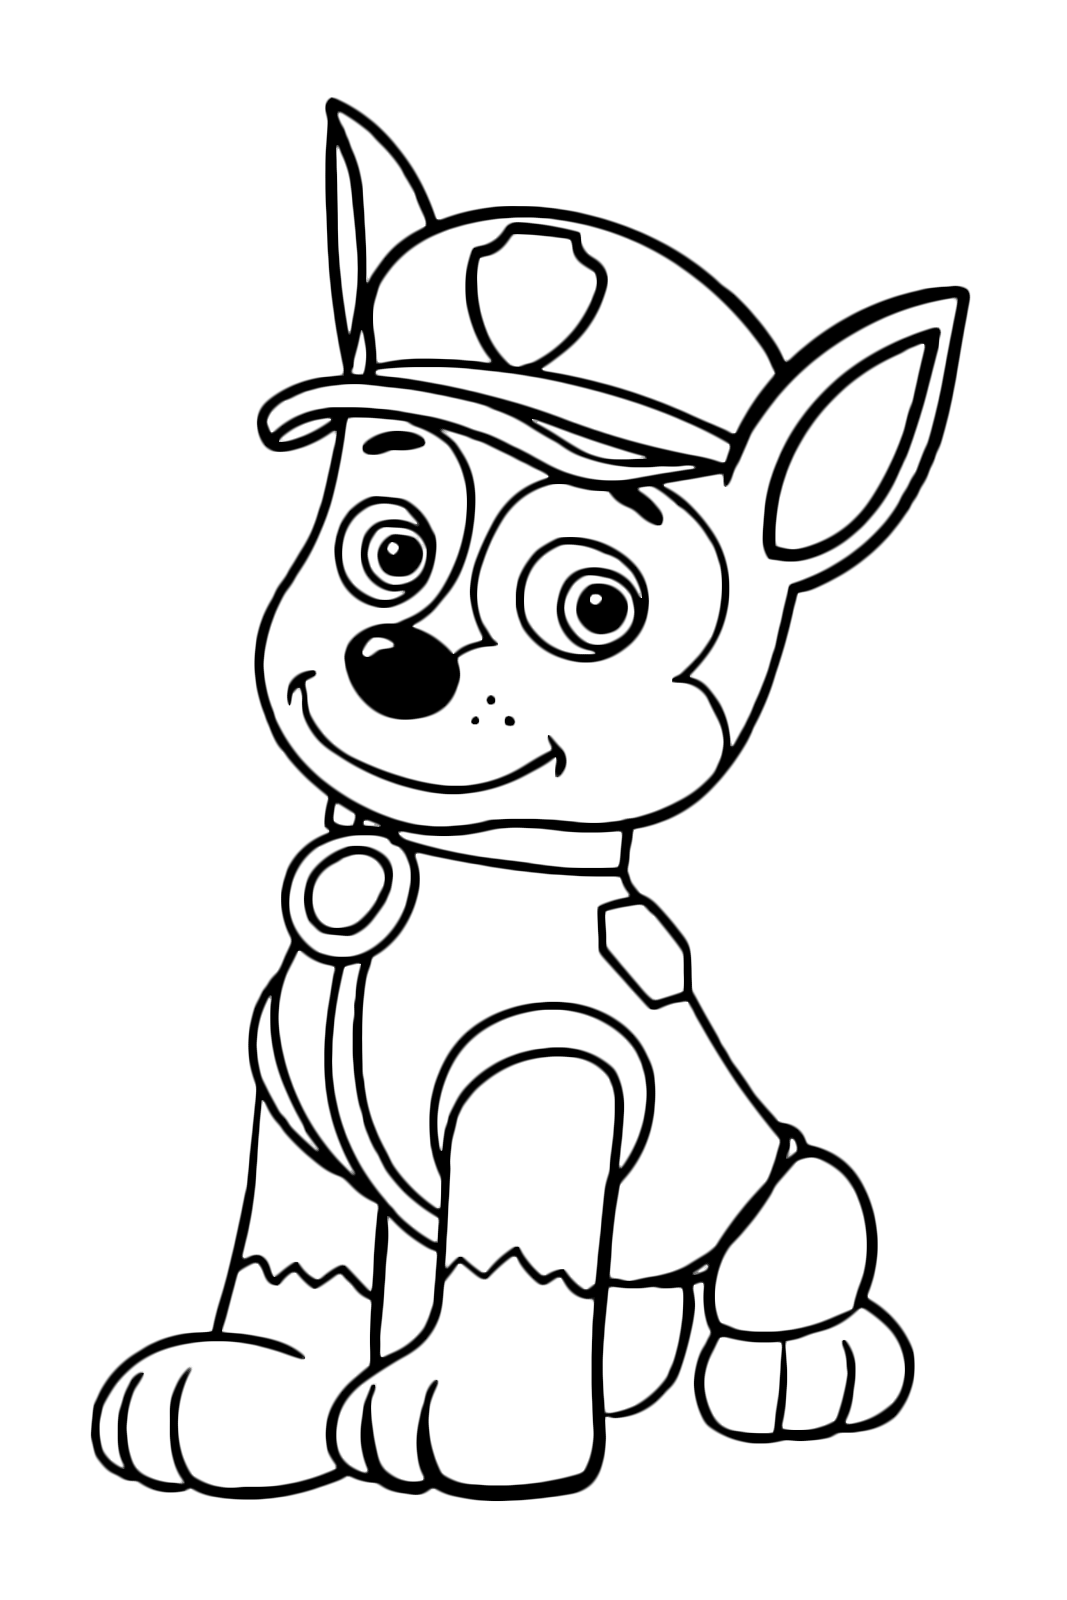 paw patrol chase coloring chase paw patrol coloring page coloring pages for kids paw patrol chase coloring